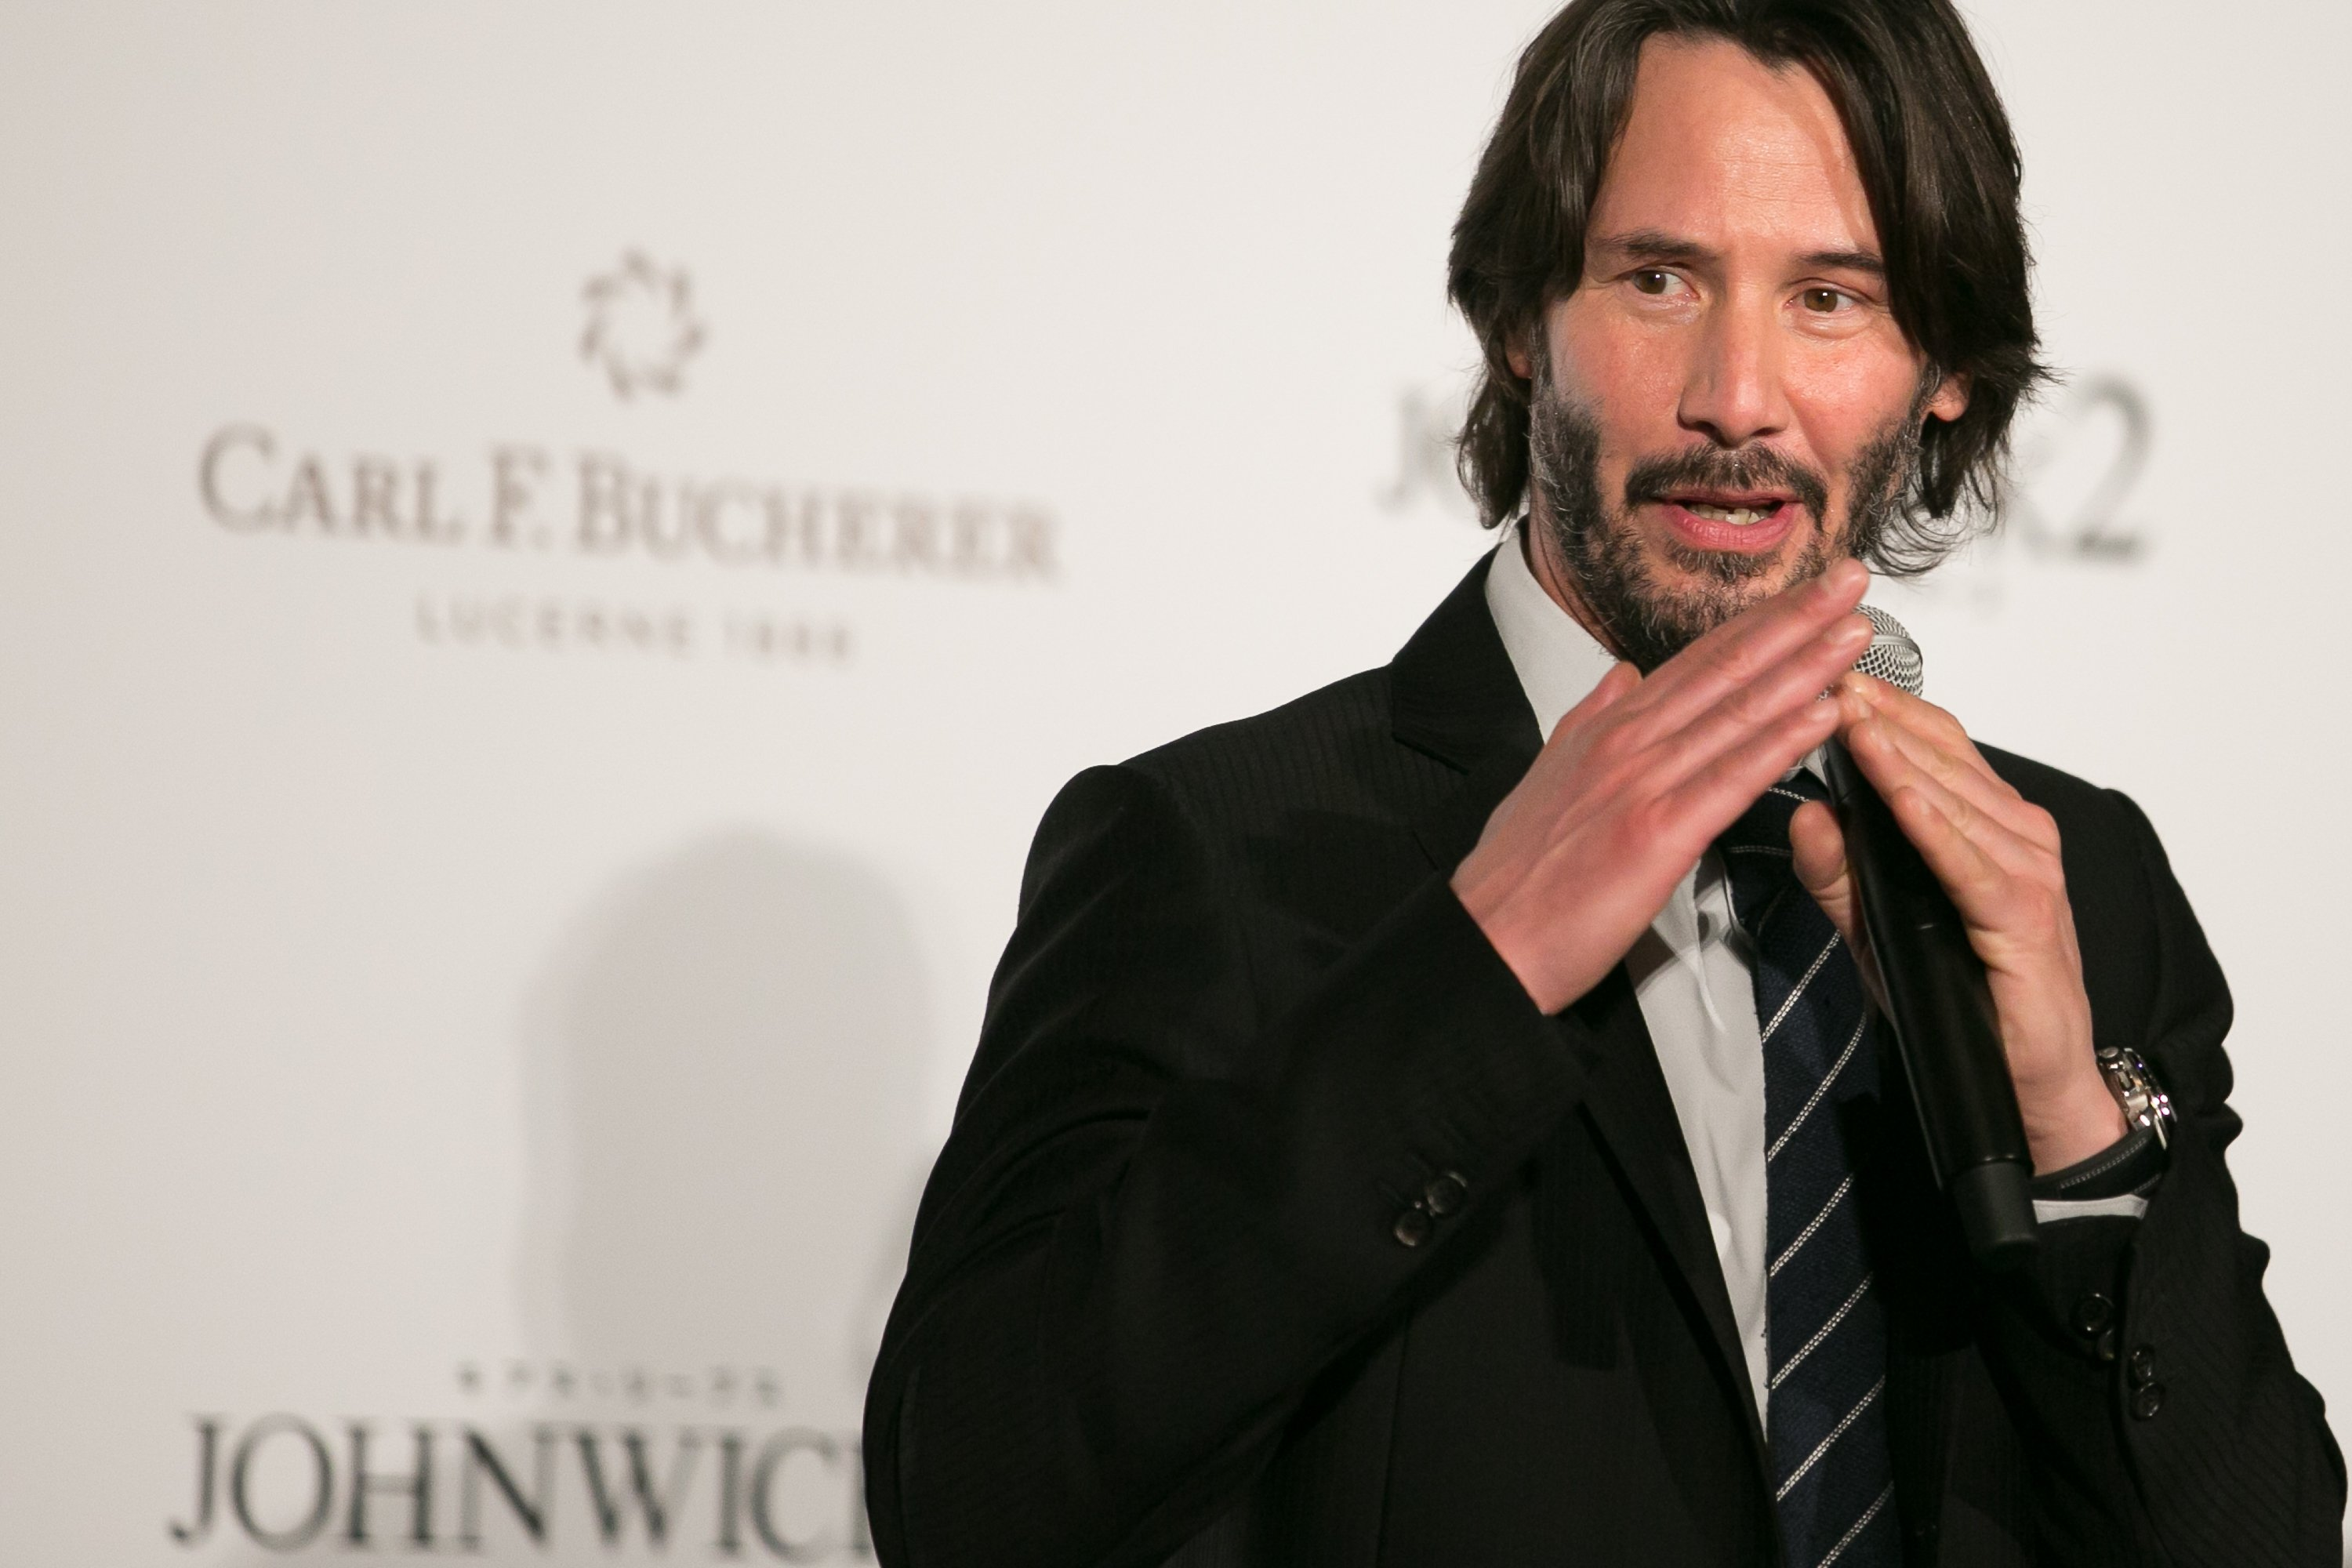 Image Source: Getty Images/Keanu speaking at a John Wick movie event